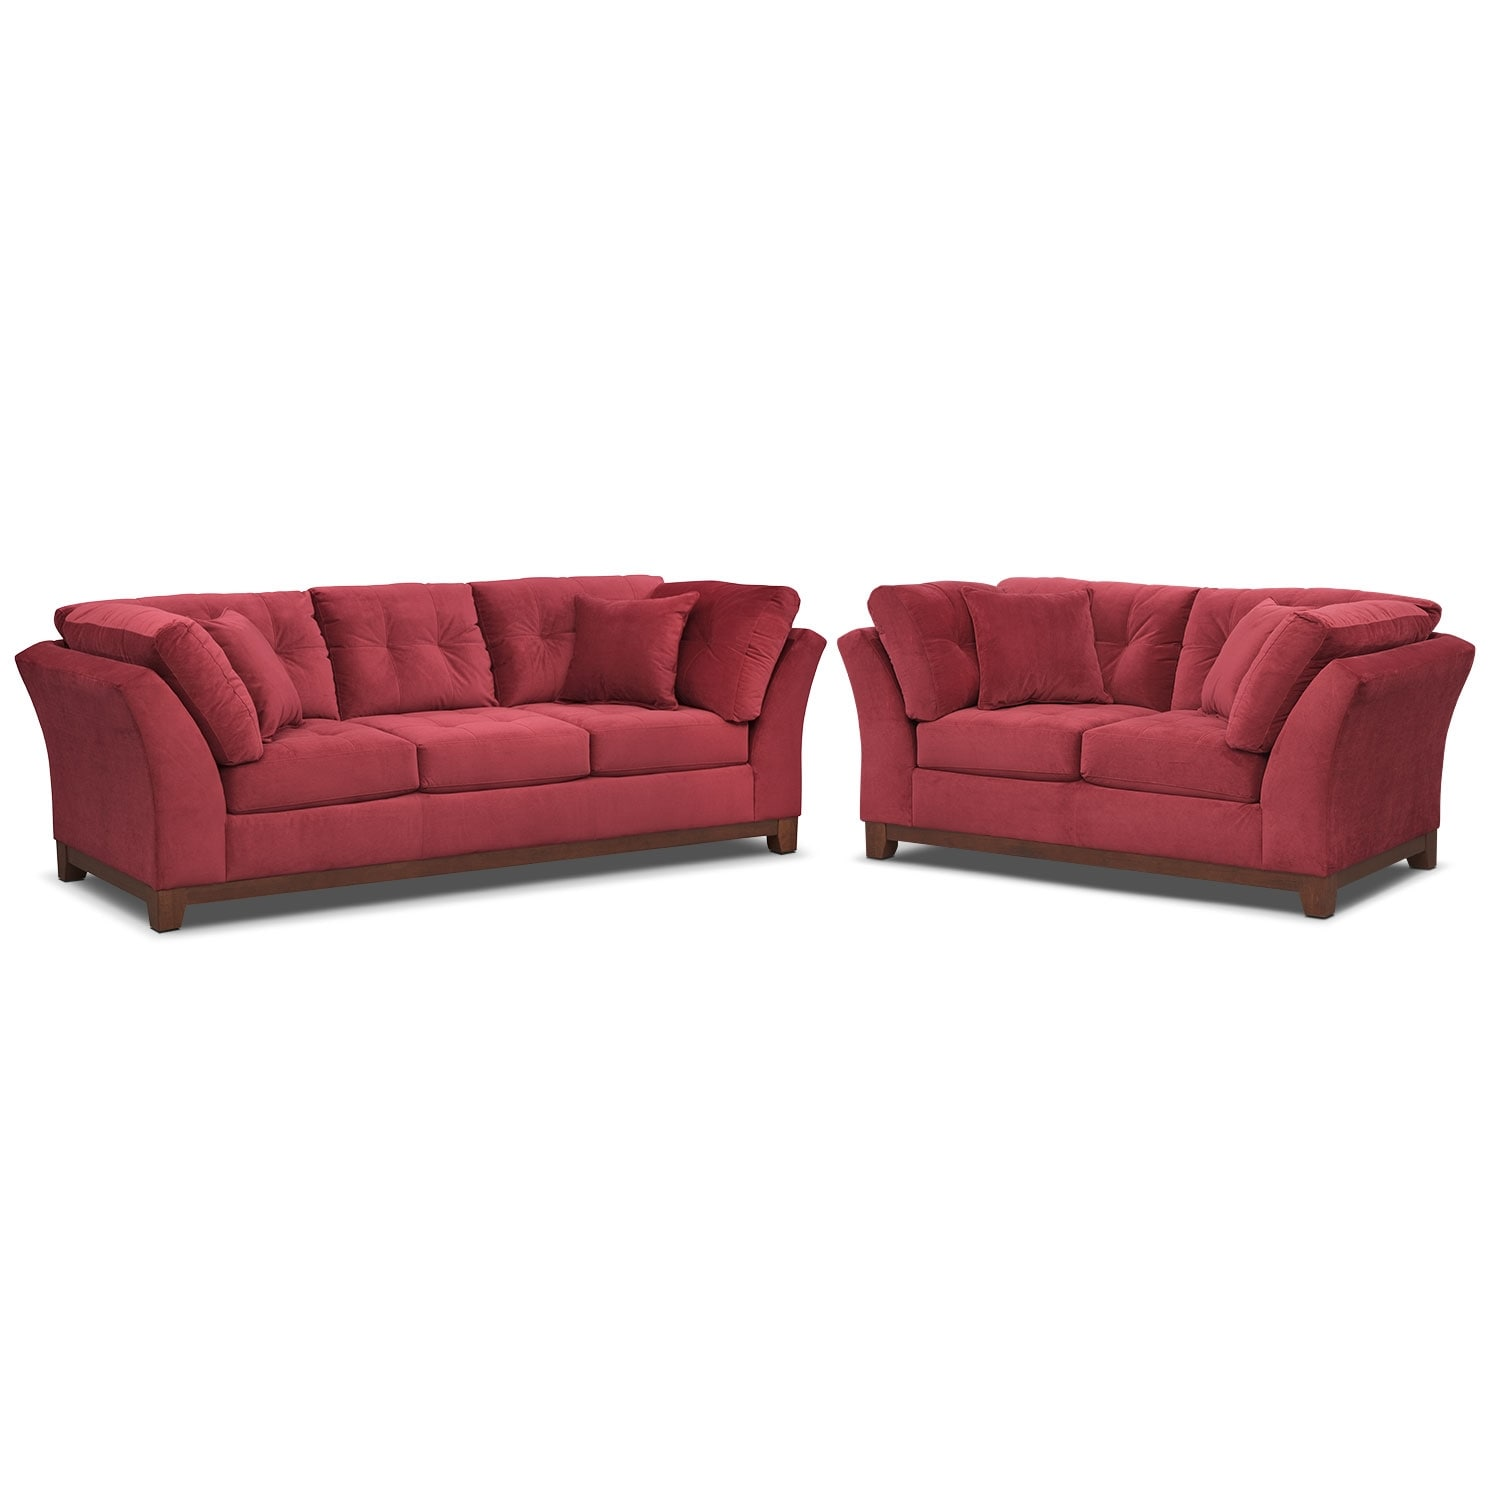 Solace Poppy 2 Pc. Living Room